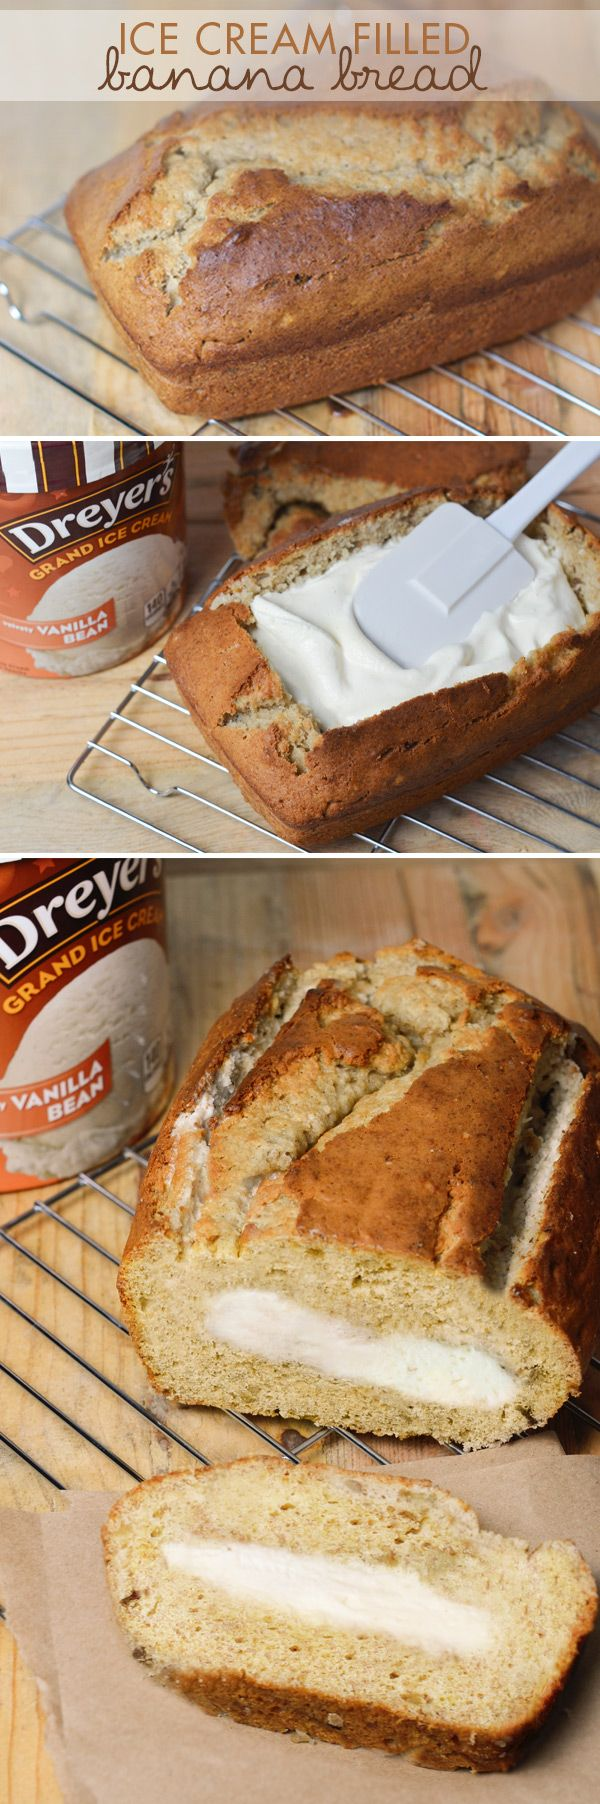 Dreyer's Ice Cream Filled Banana Bread: Homemade banana bread meets creamy Dreyer's vanilla ice cream in this cool take on the classic Fall treat. Just make your favorite banana bread recipe and let it cool. Then cut off the top, fill with ice cream, put the top back on and place in the freezer to set. After that? Just slice and enjoy!